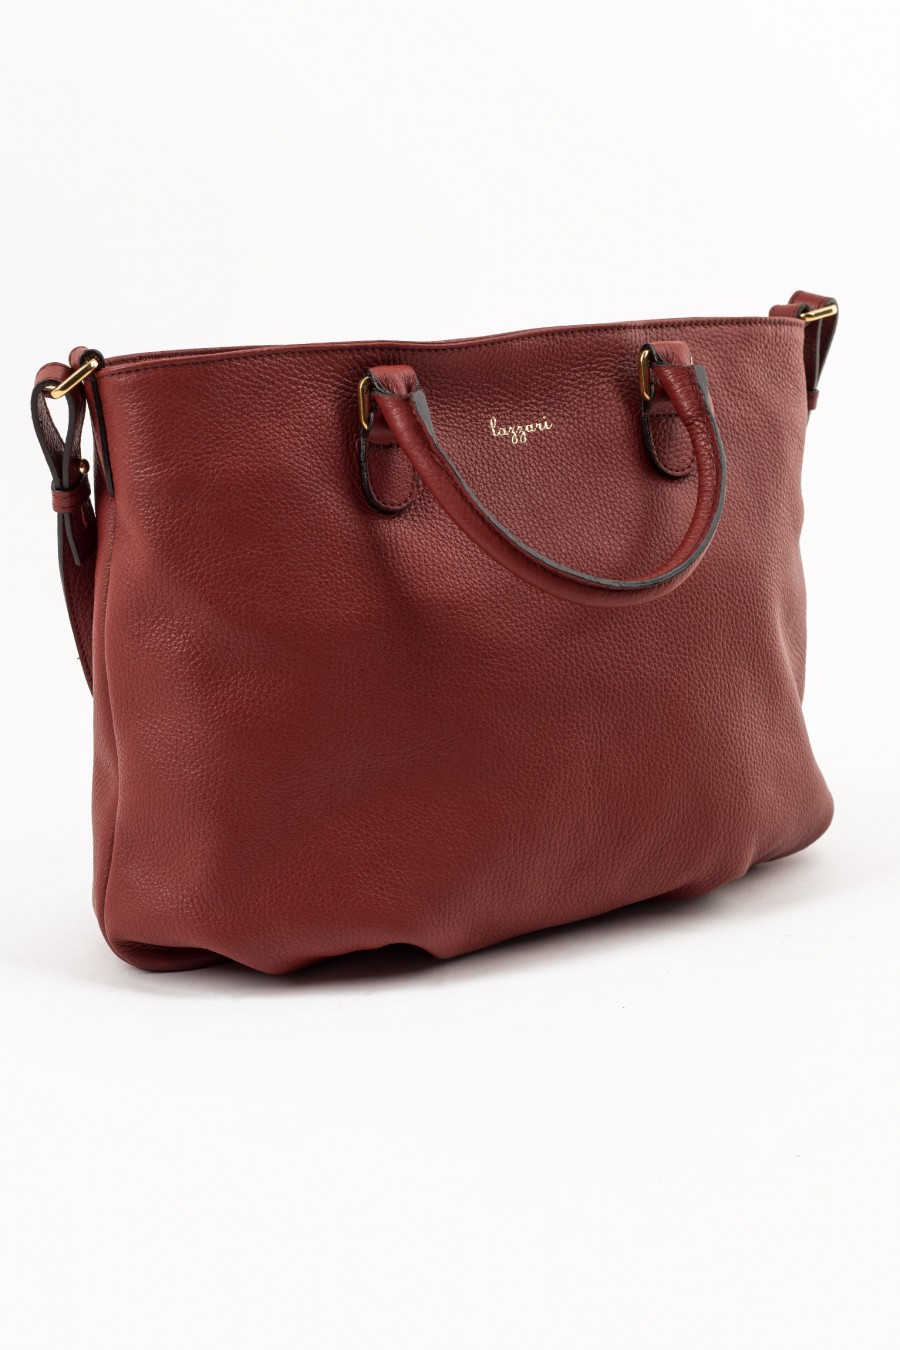 genuine leather large bag